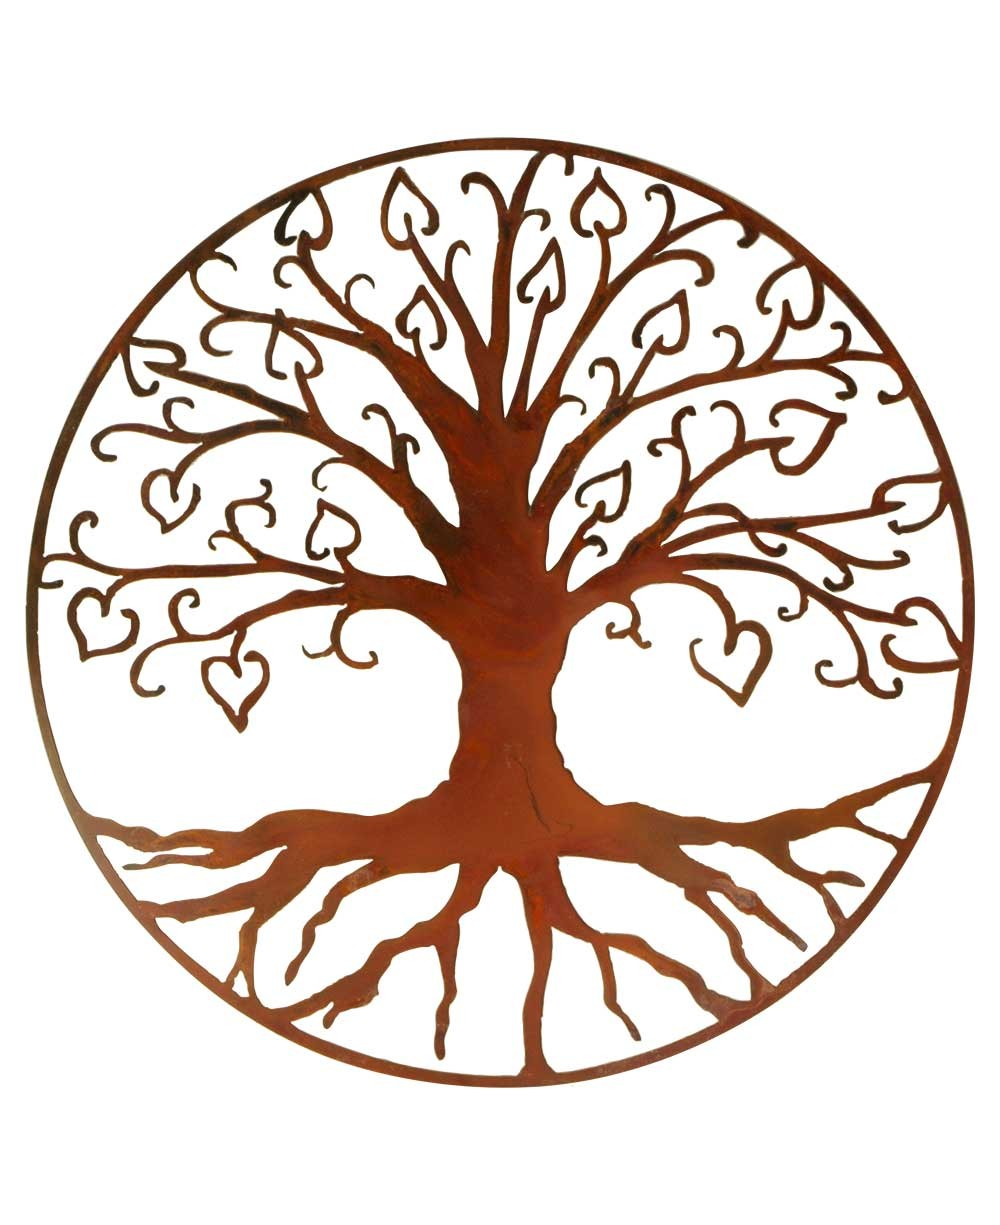 The Tree Of Life Drawing - ClipArt Best